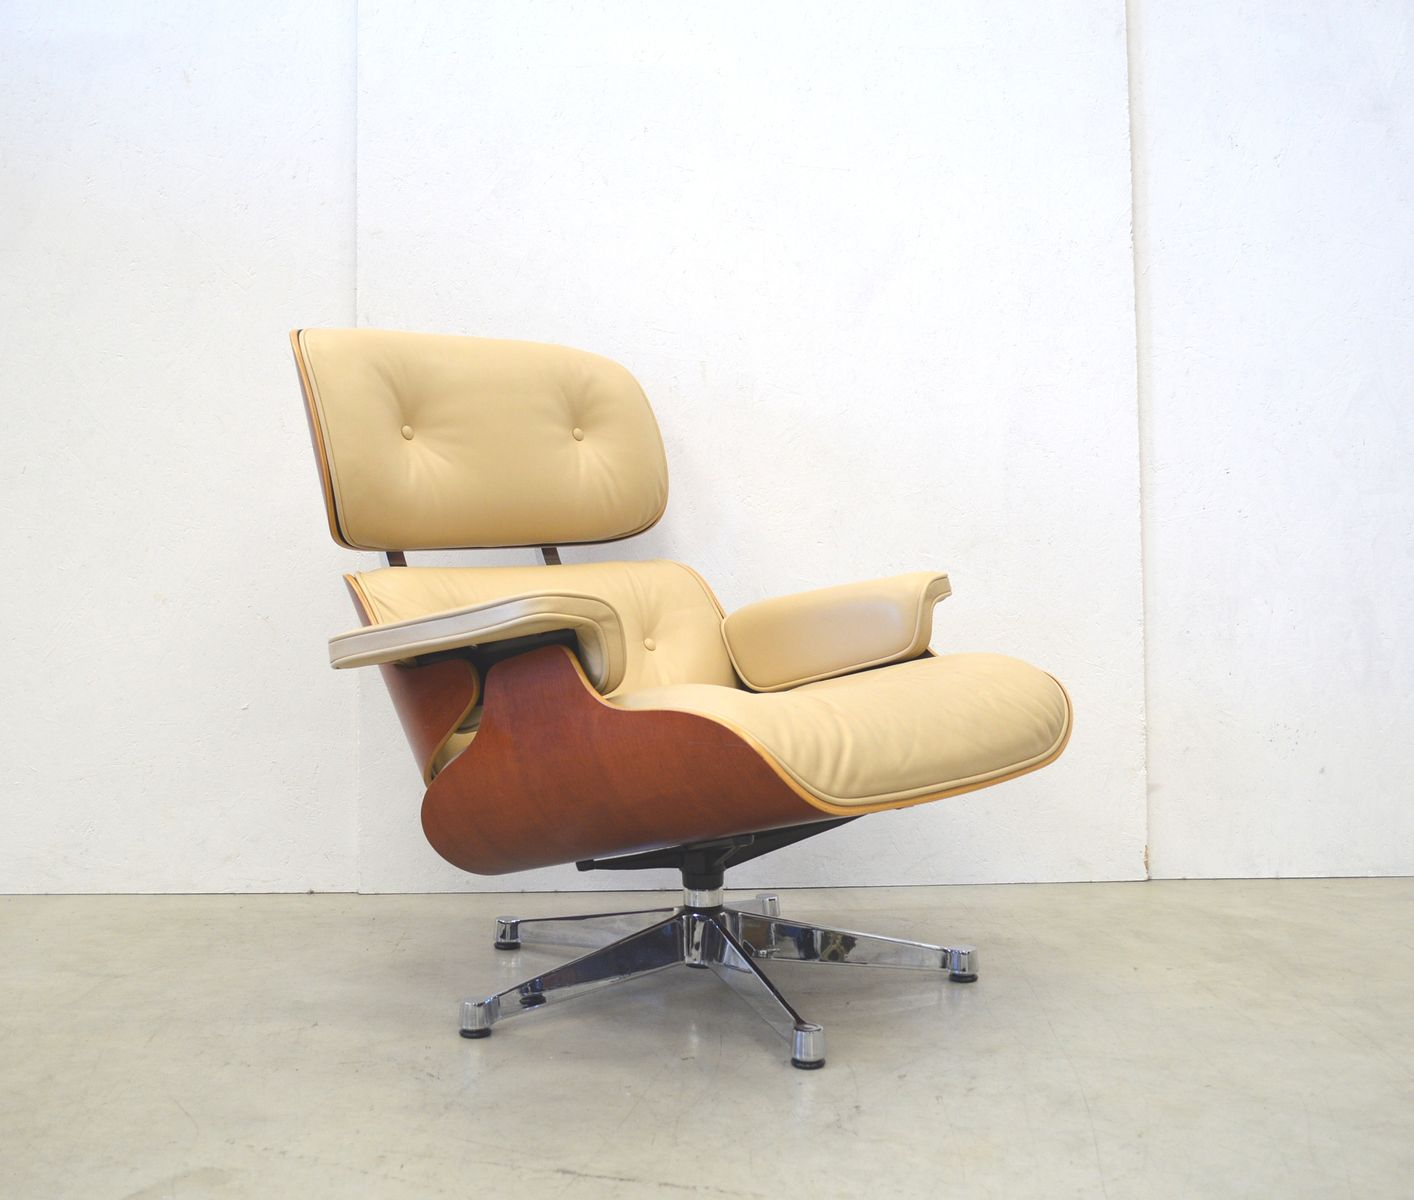 Sessel Charles Eames Designer Sessel Charles Eames Charles Eames Lounge Chair